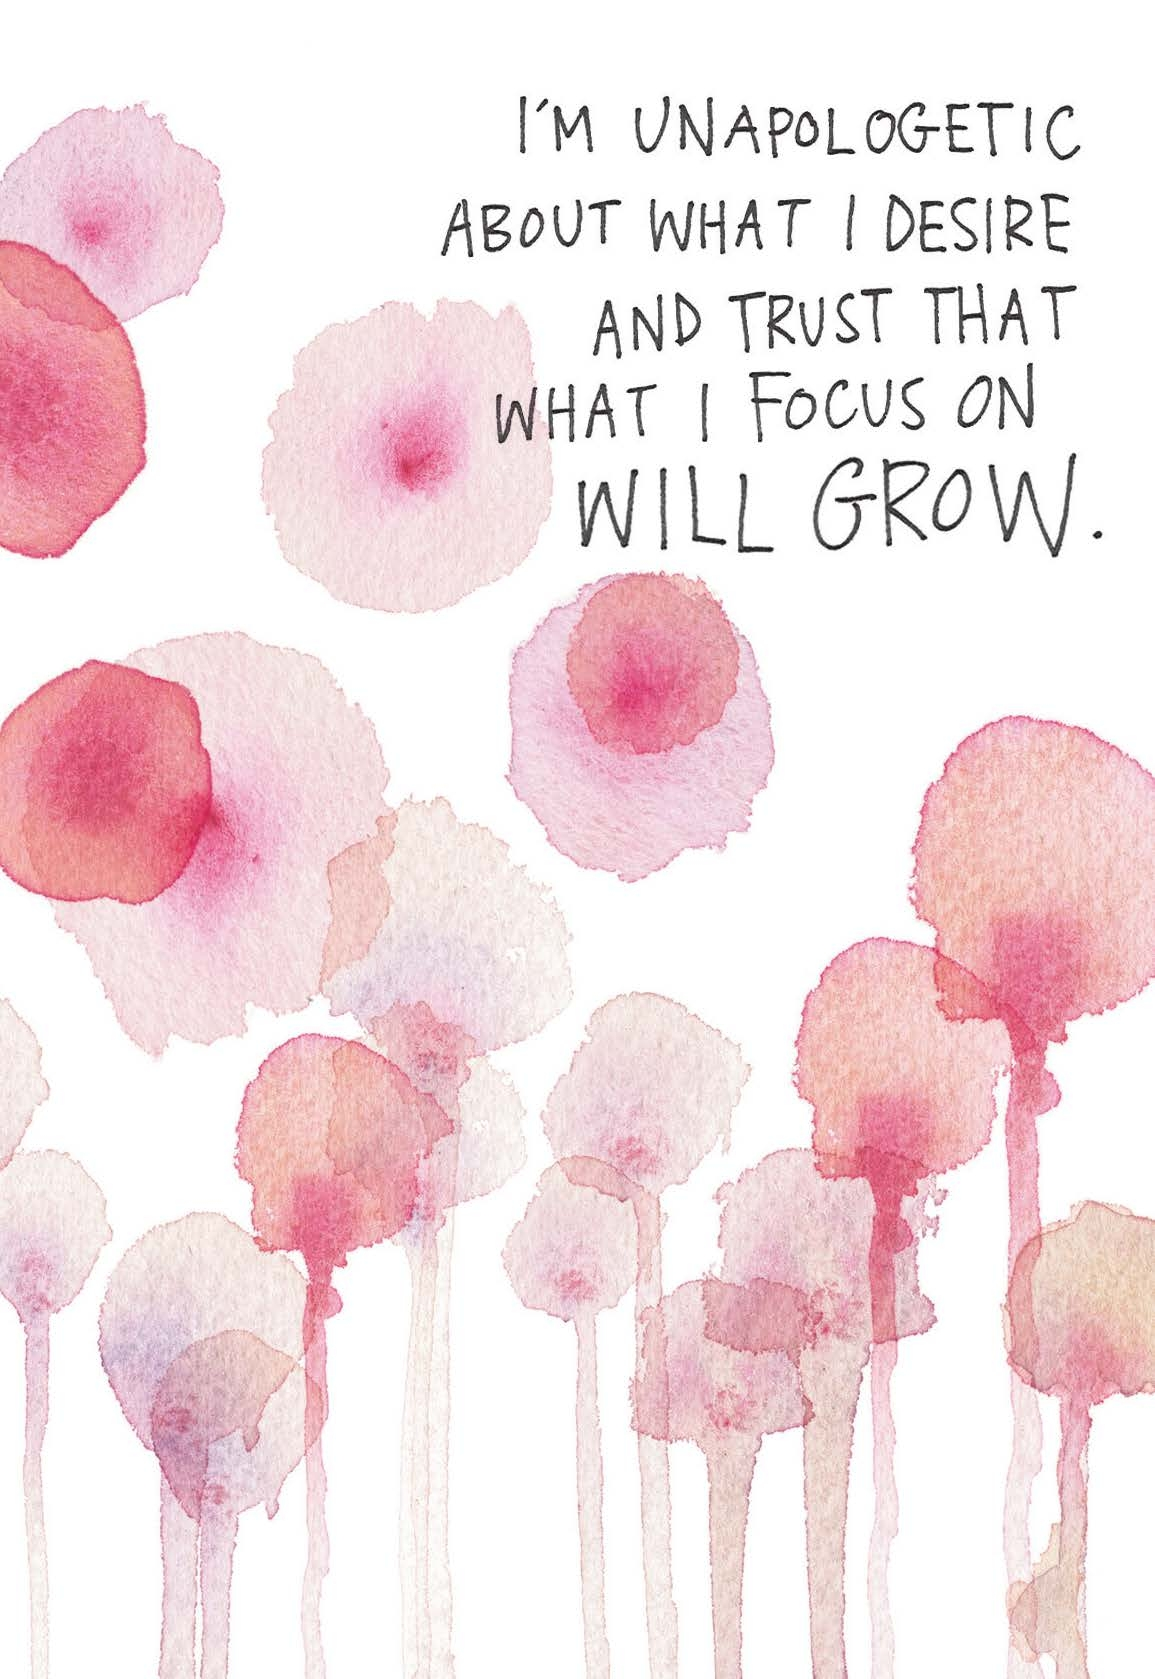 I'm unapologetic about what I desire and trust that what I focus on will grow | Gabby Bernstein | The Universe Has Your Back card deck